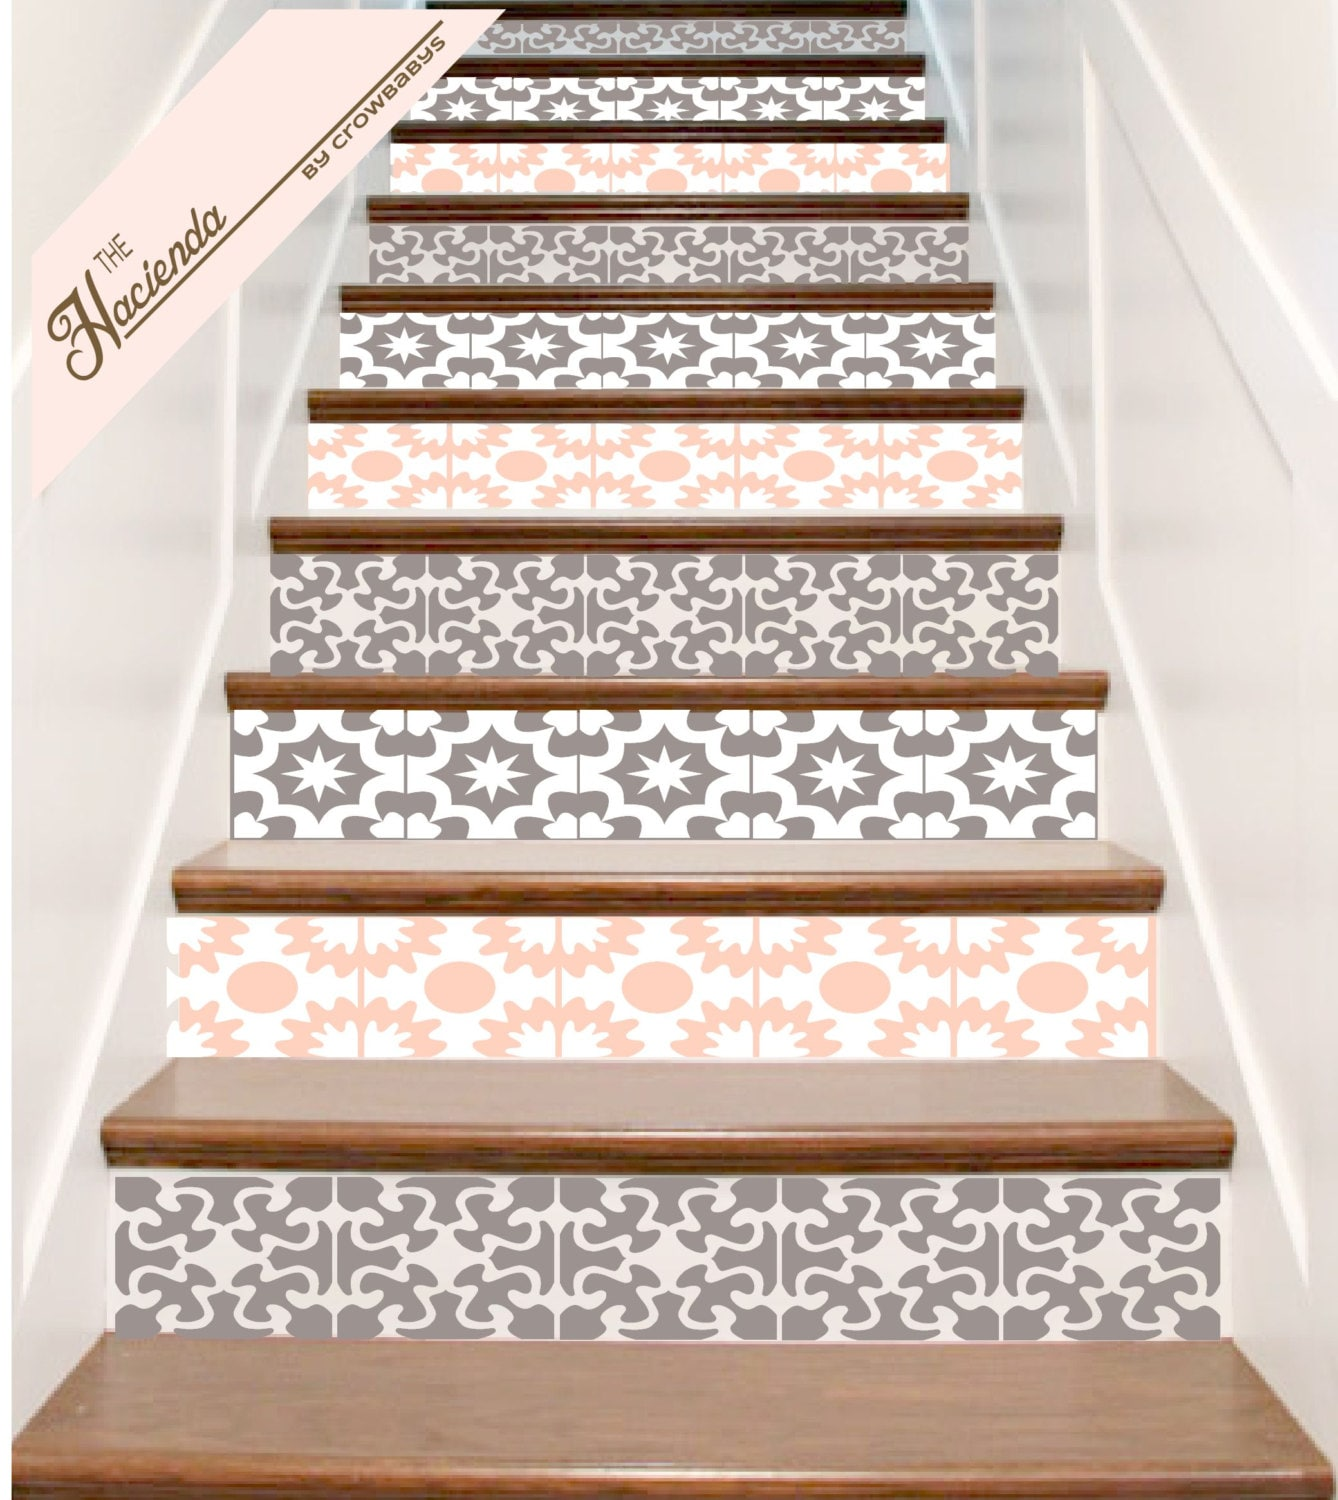 vinyl stair tile decals set of 13 hacienda spanish by crowbabys. Black Bedroom Furniture Sets. Home Design Ideas